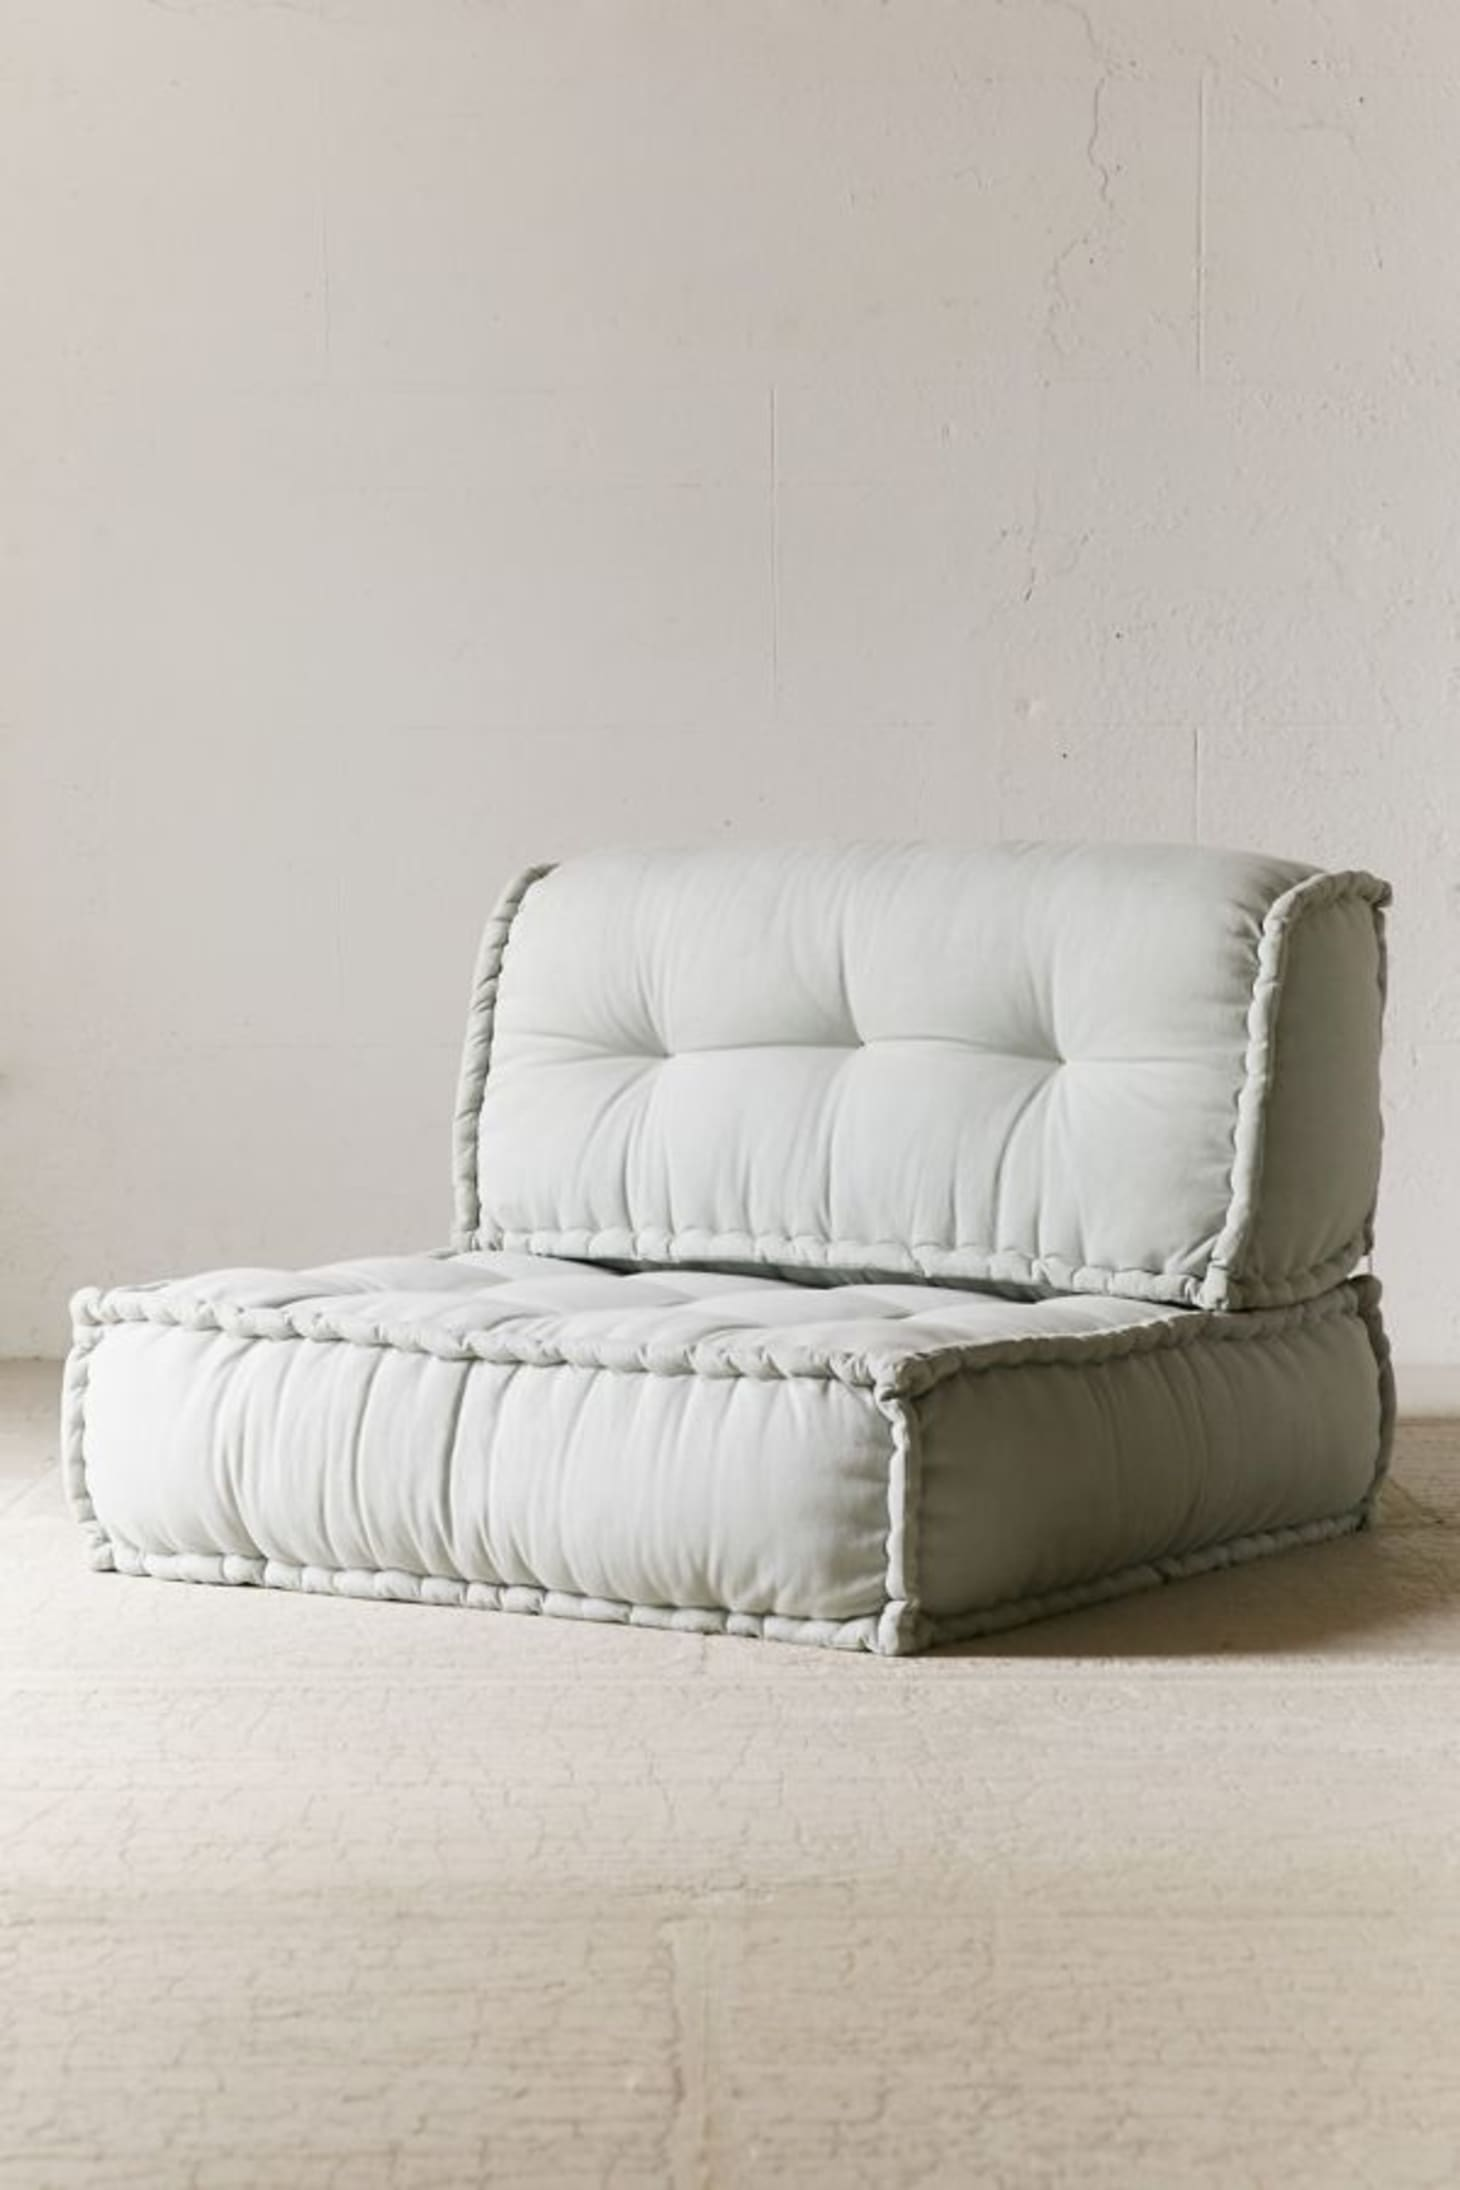 Floor Seating Ideas: Cushions, Poufs, and Pillows ...